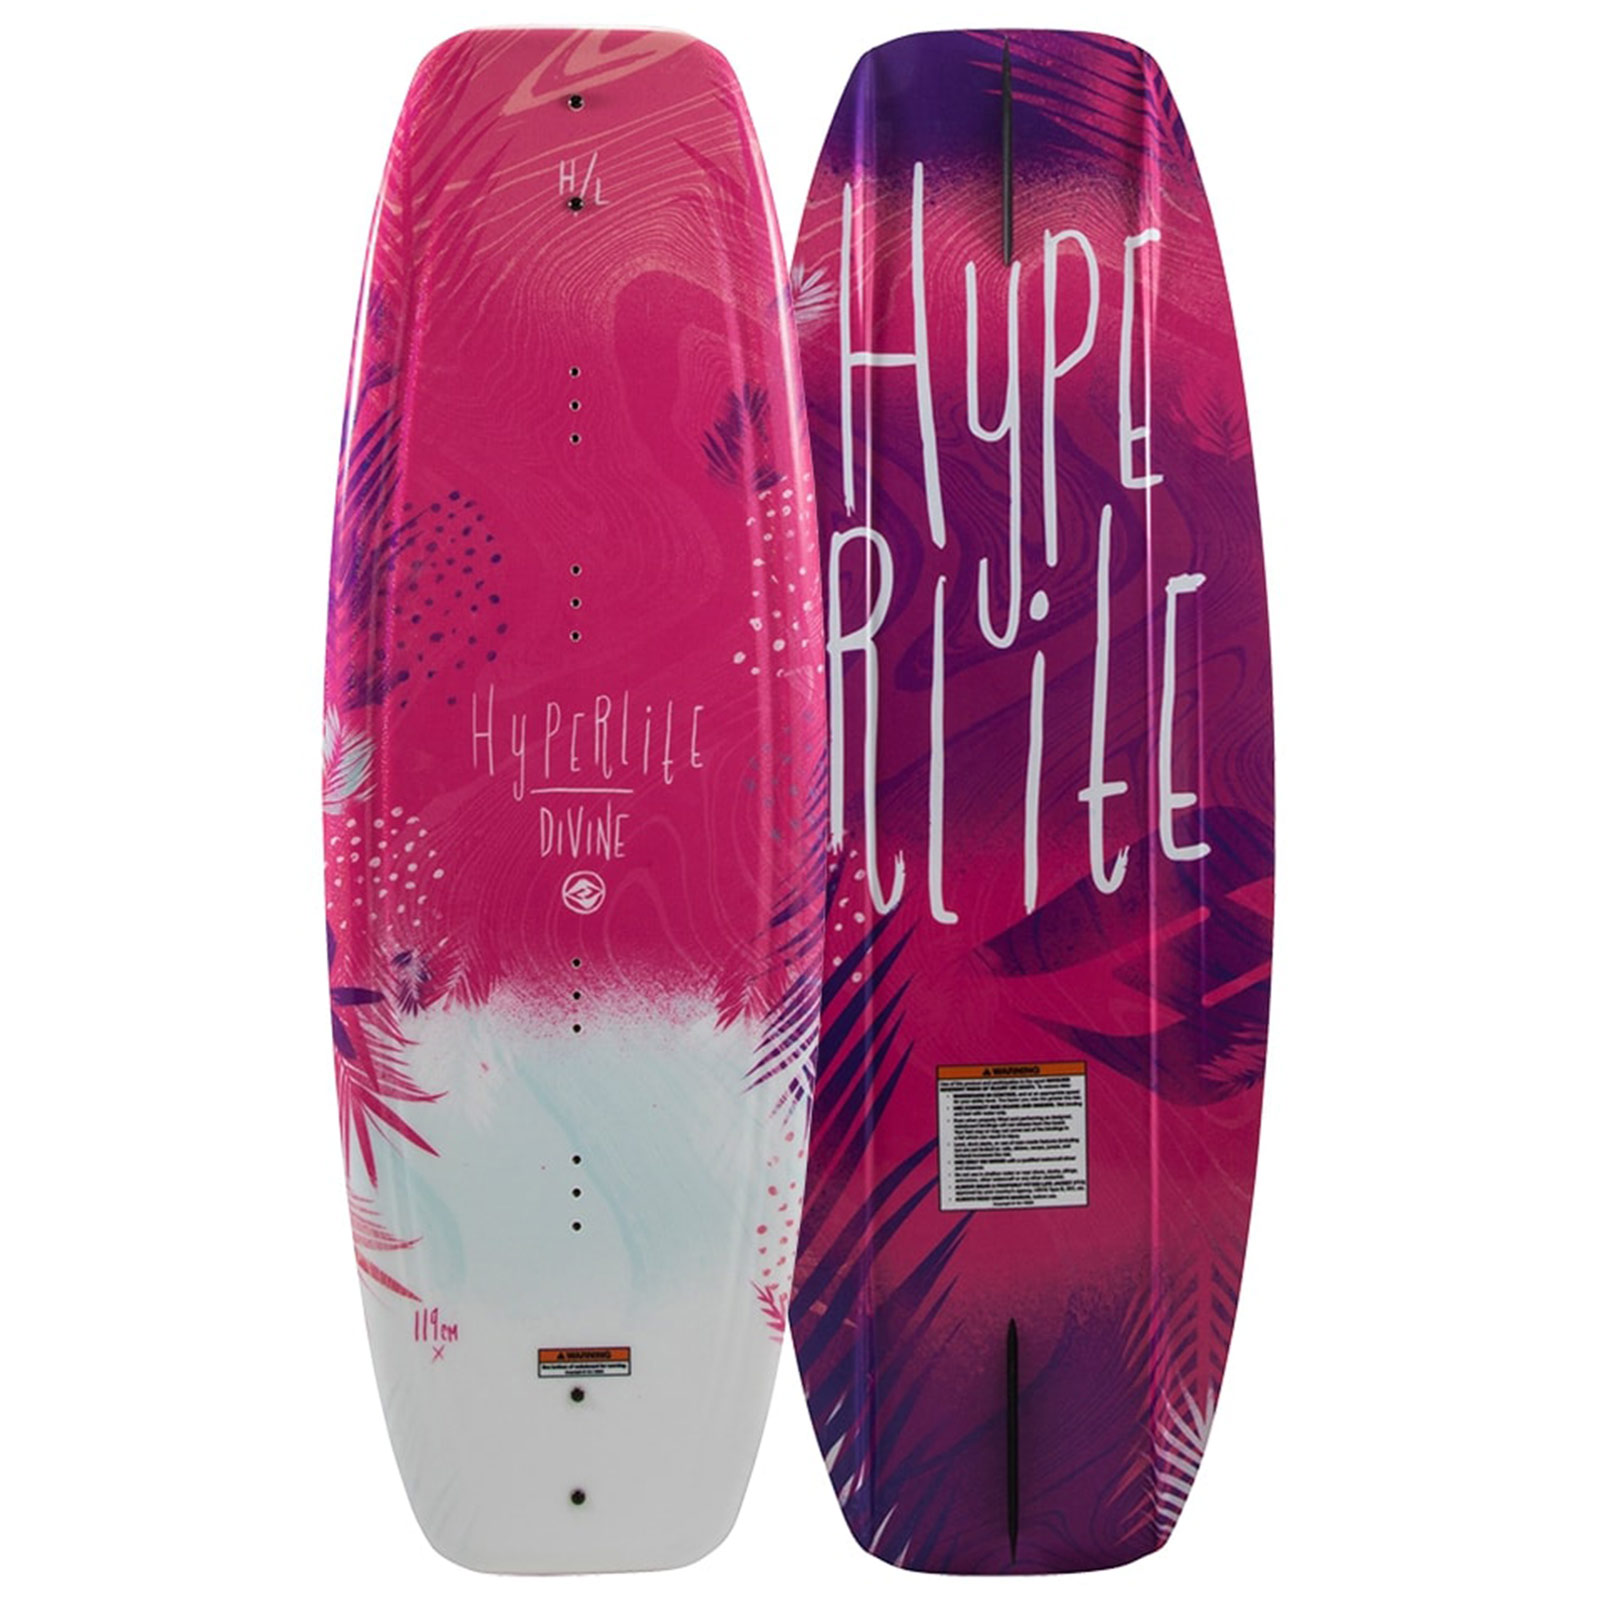 PLACA WAKEBOARD DIVINE 119 JR. WAKEBOARD HYPERLITE 2019